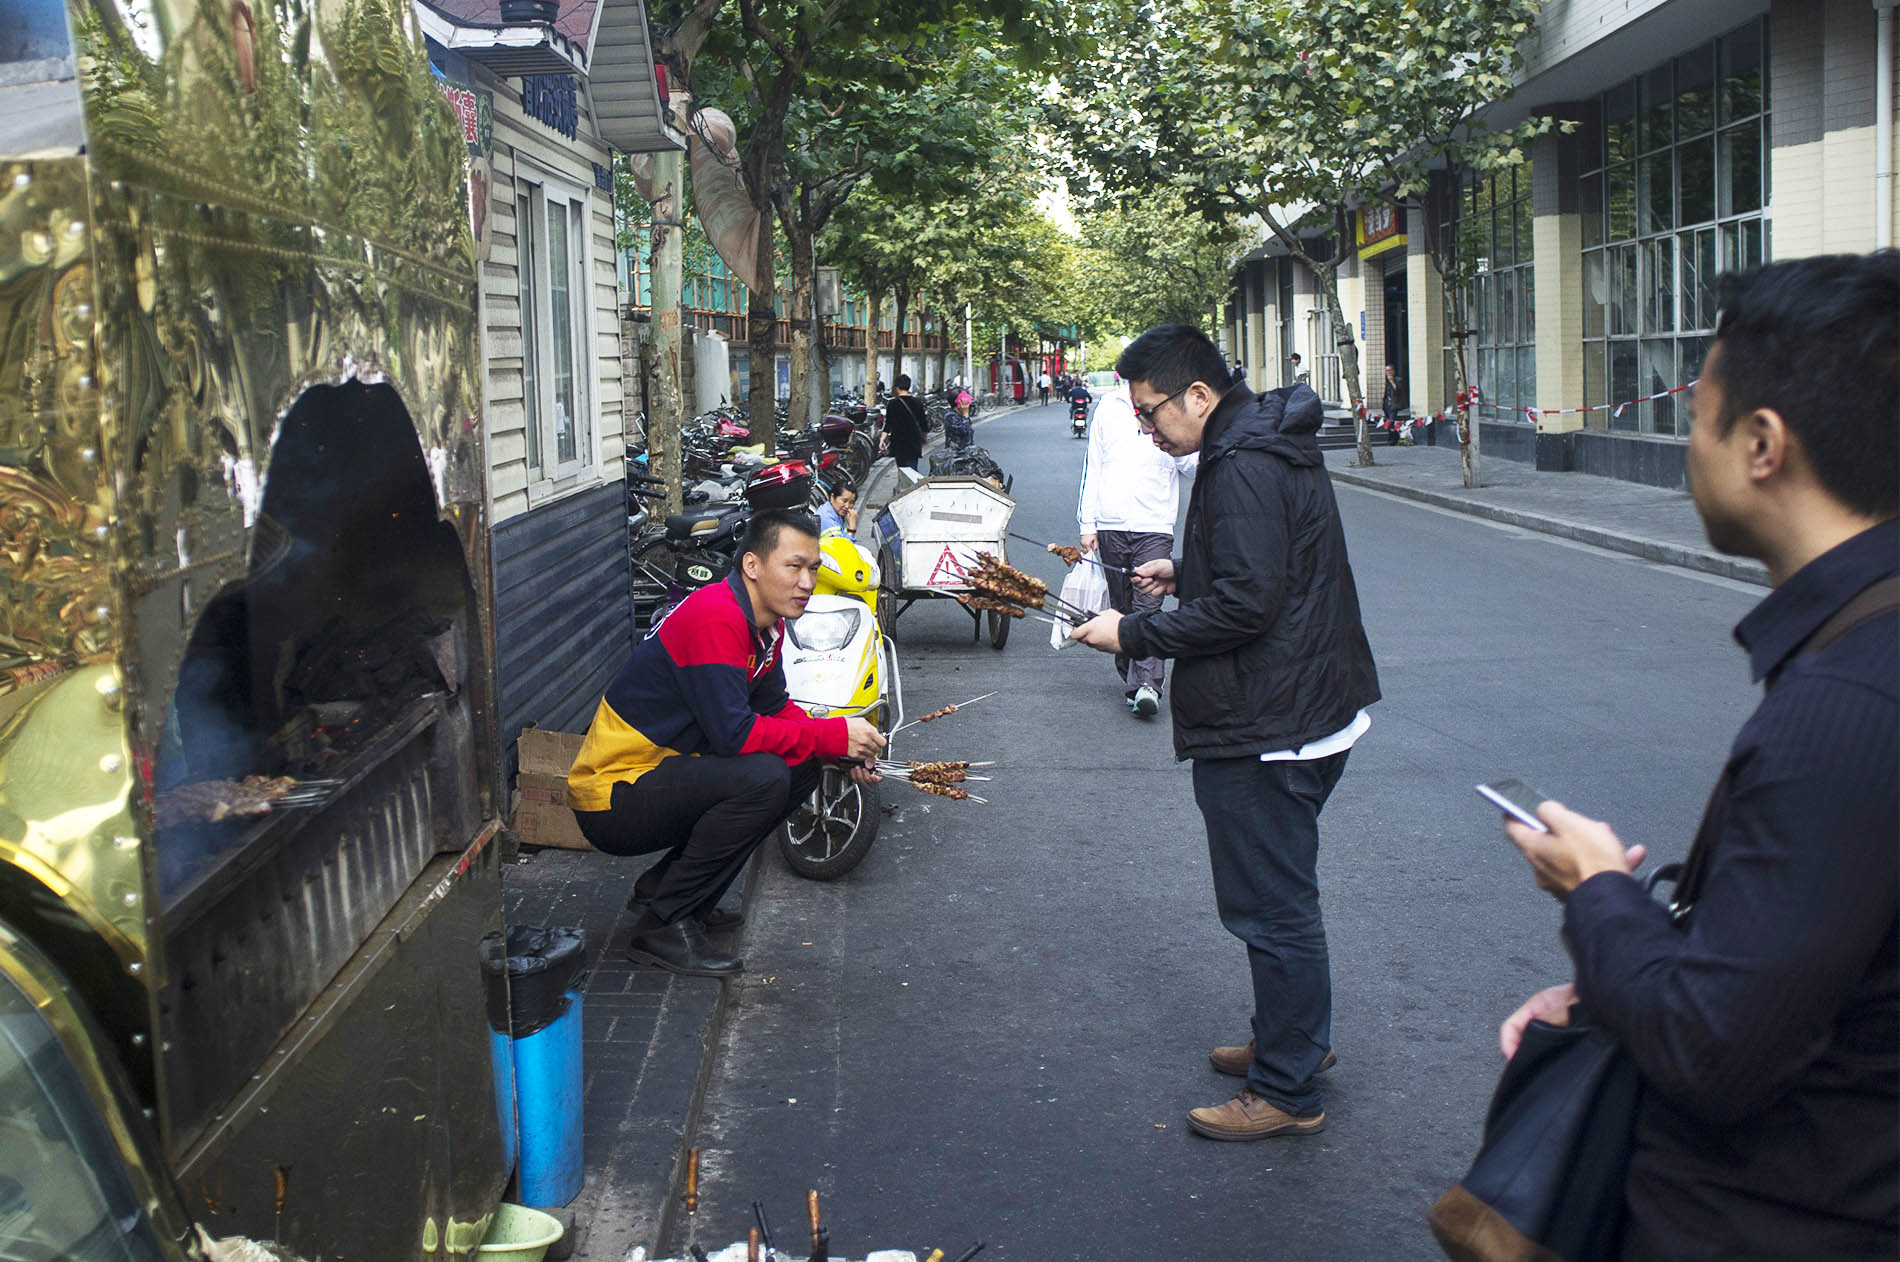 Locals eating on the street.